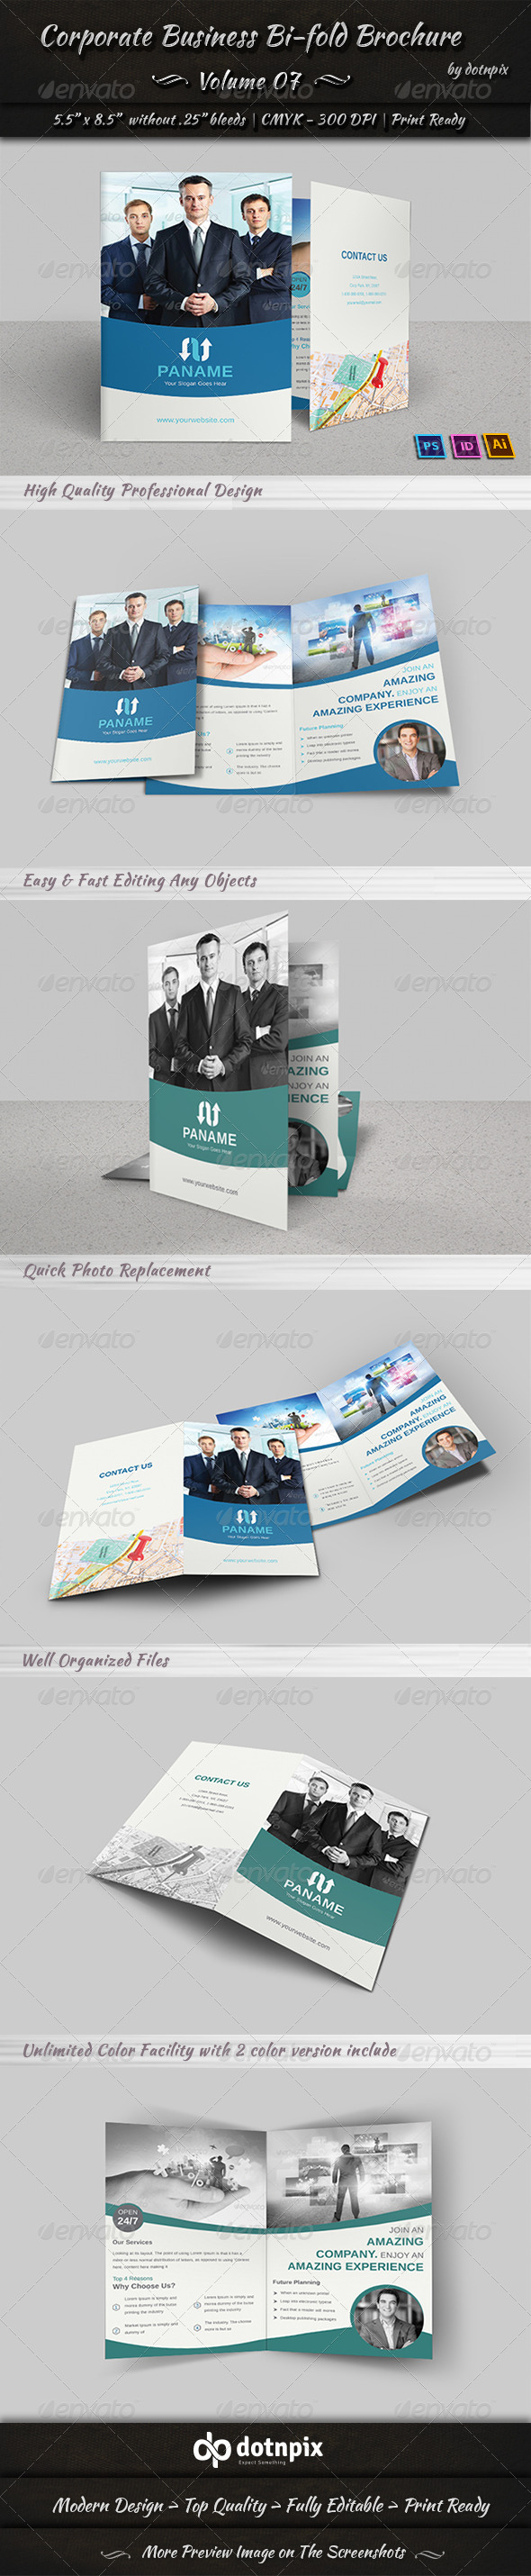 GraphicRiver Corporate Business Bi-Fold Brochure Volume 7 6988552